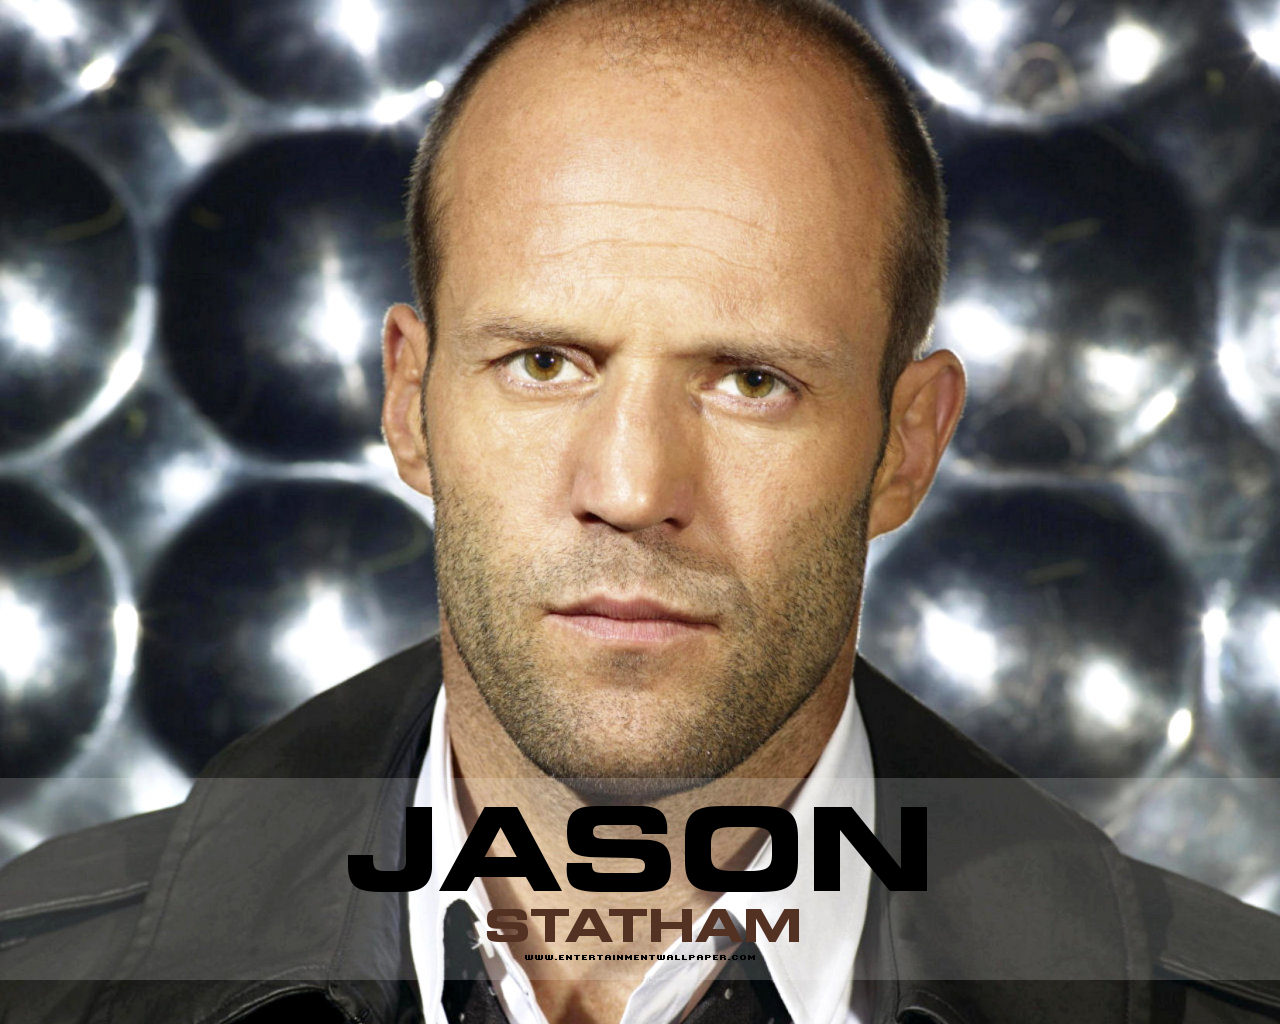 http://1.bp.blogspot.com/-VCnT5YNDs-c/Tx2JA9T7K1I/AAAAAAAAAlk/uaz81p1_Np0/s1600/Jason-Statham-Wallpapers-for-Desktop-6.jpg